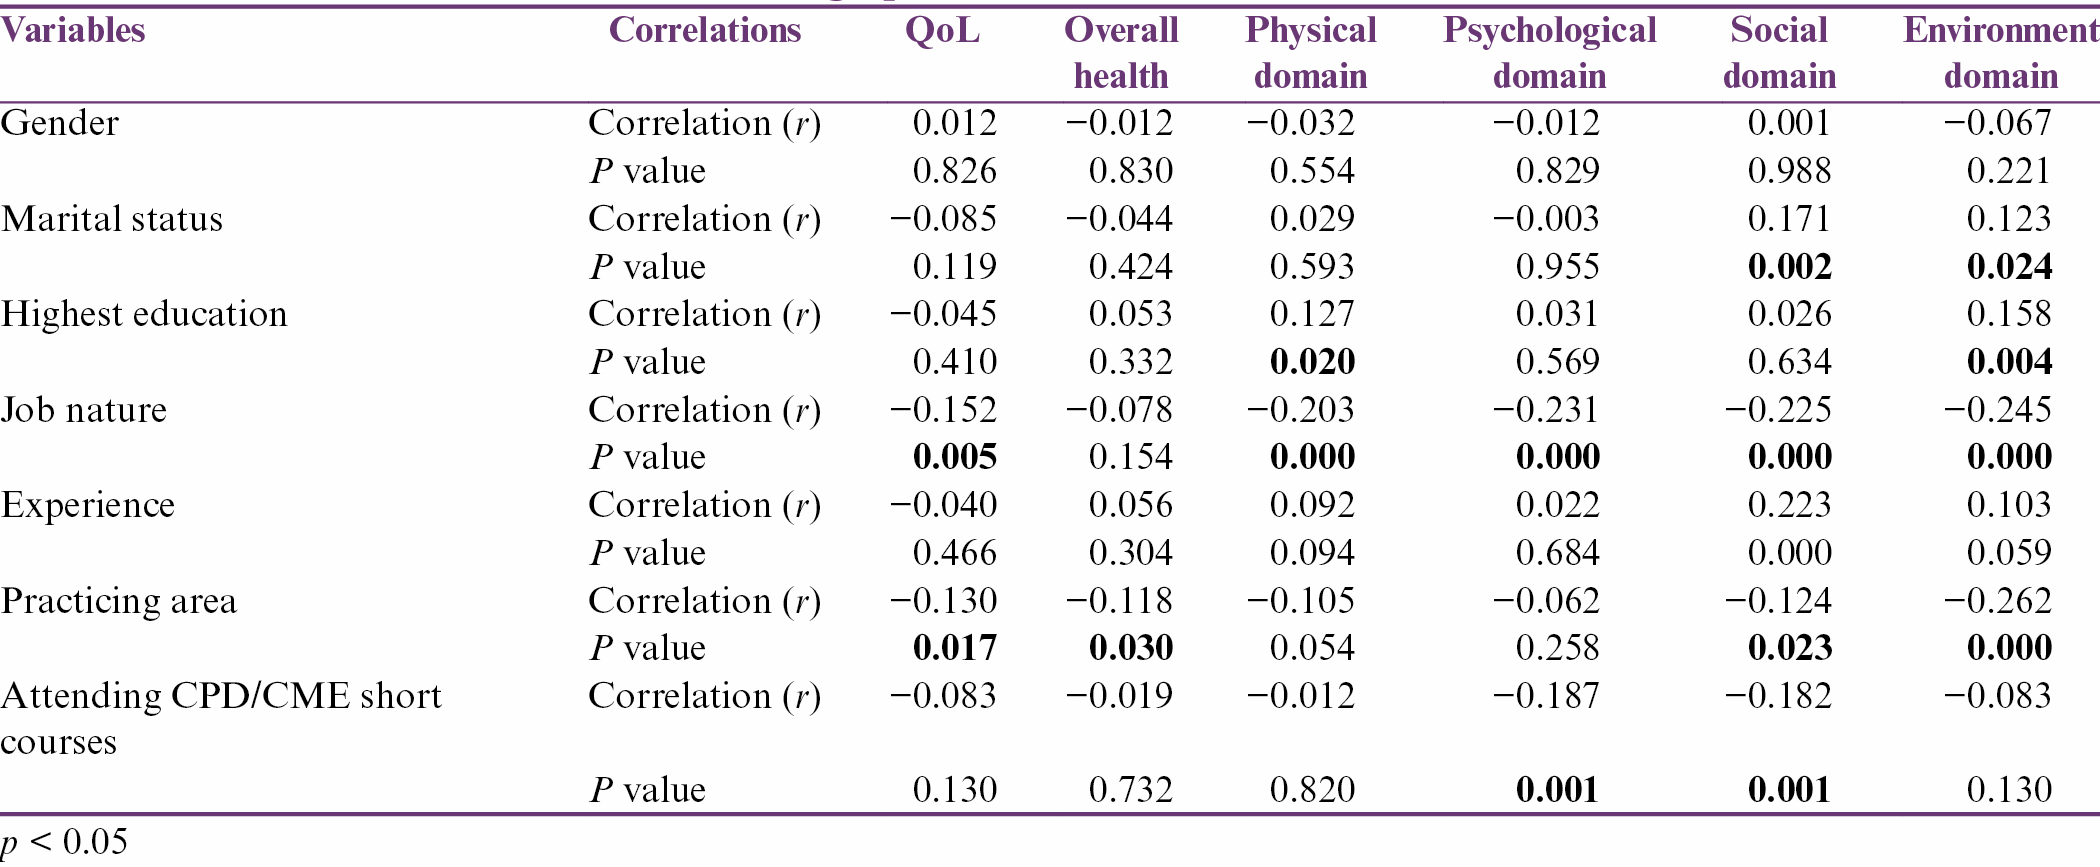 Table 6: Correlations between demographic variables and different domains of WHOQOL-BREF